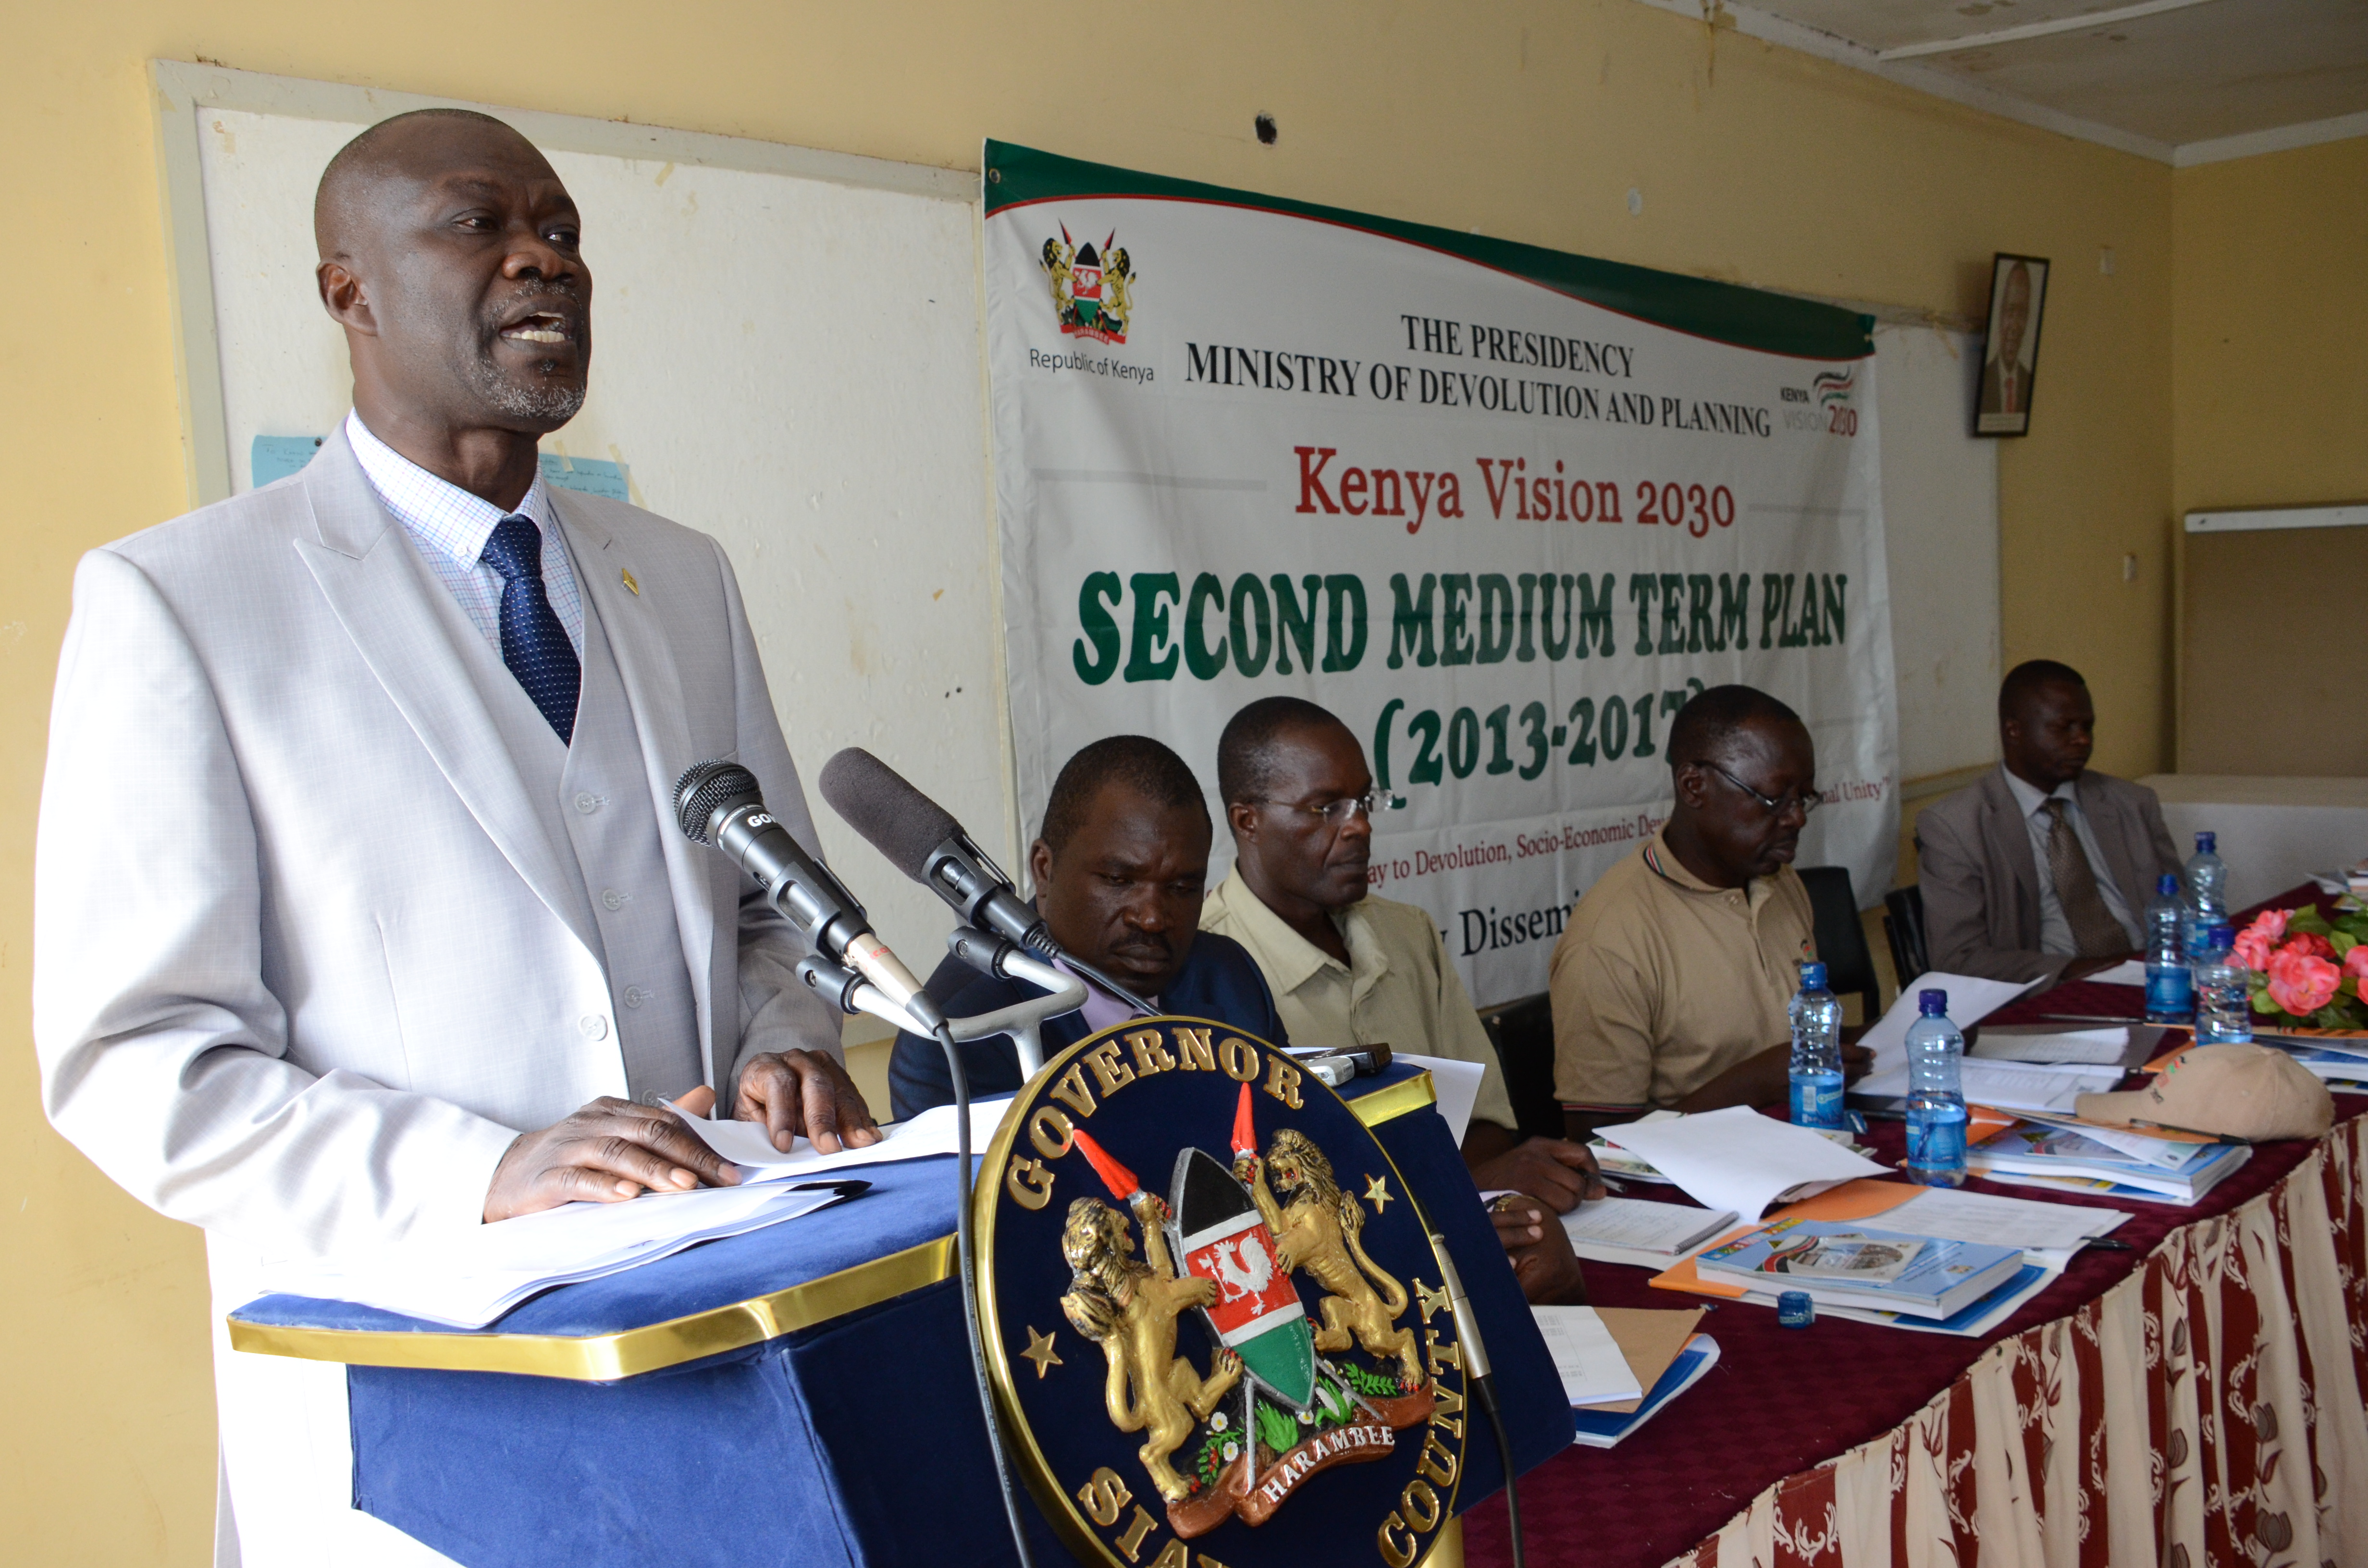 Siaya County Governor Cornell Rasanga during giving his key note address the Second Medium Term Plan dissemination forum at the Siaya Agricultural Training Centre.  The ministry of Devolution and planning is undertaking a countrywide sensitization exercise to strengthen the capacity of county officials on how to make the Vision 2030 a reality.